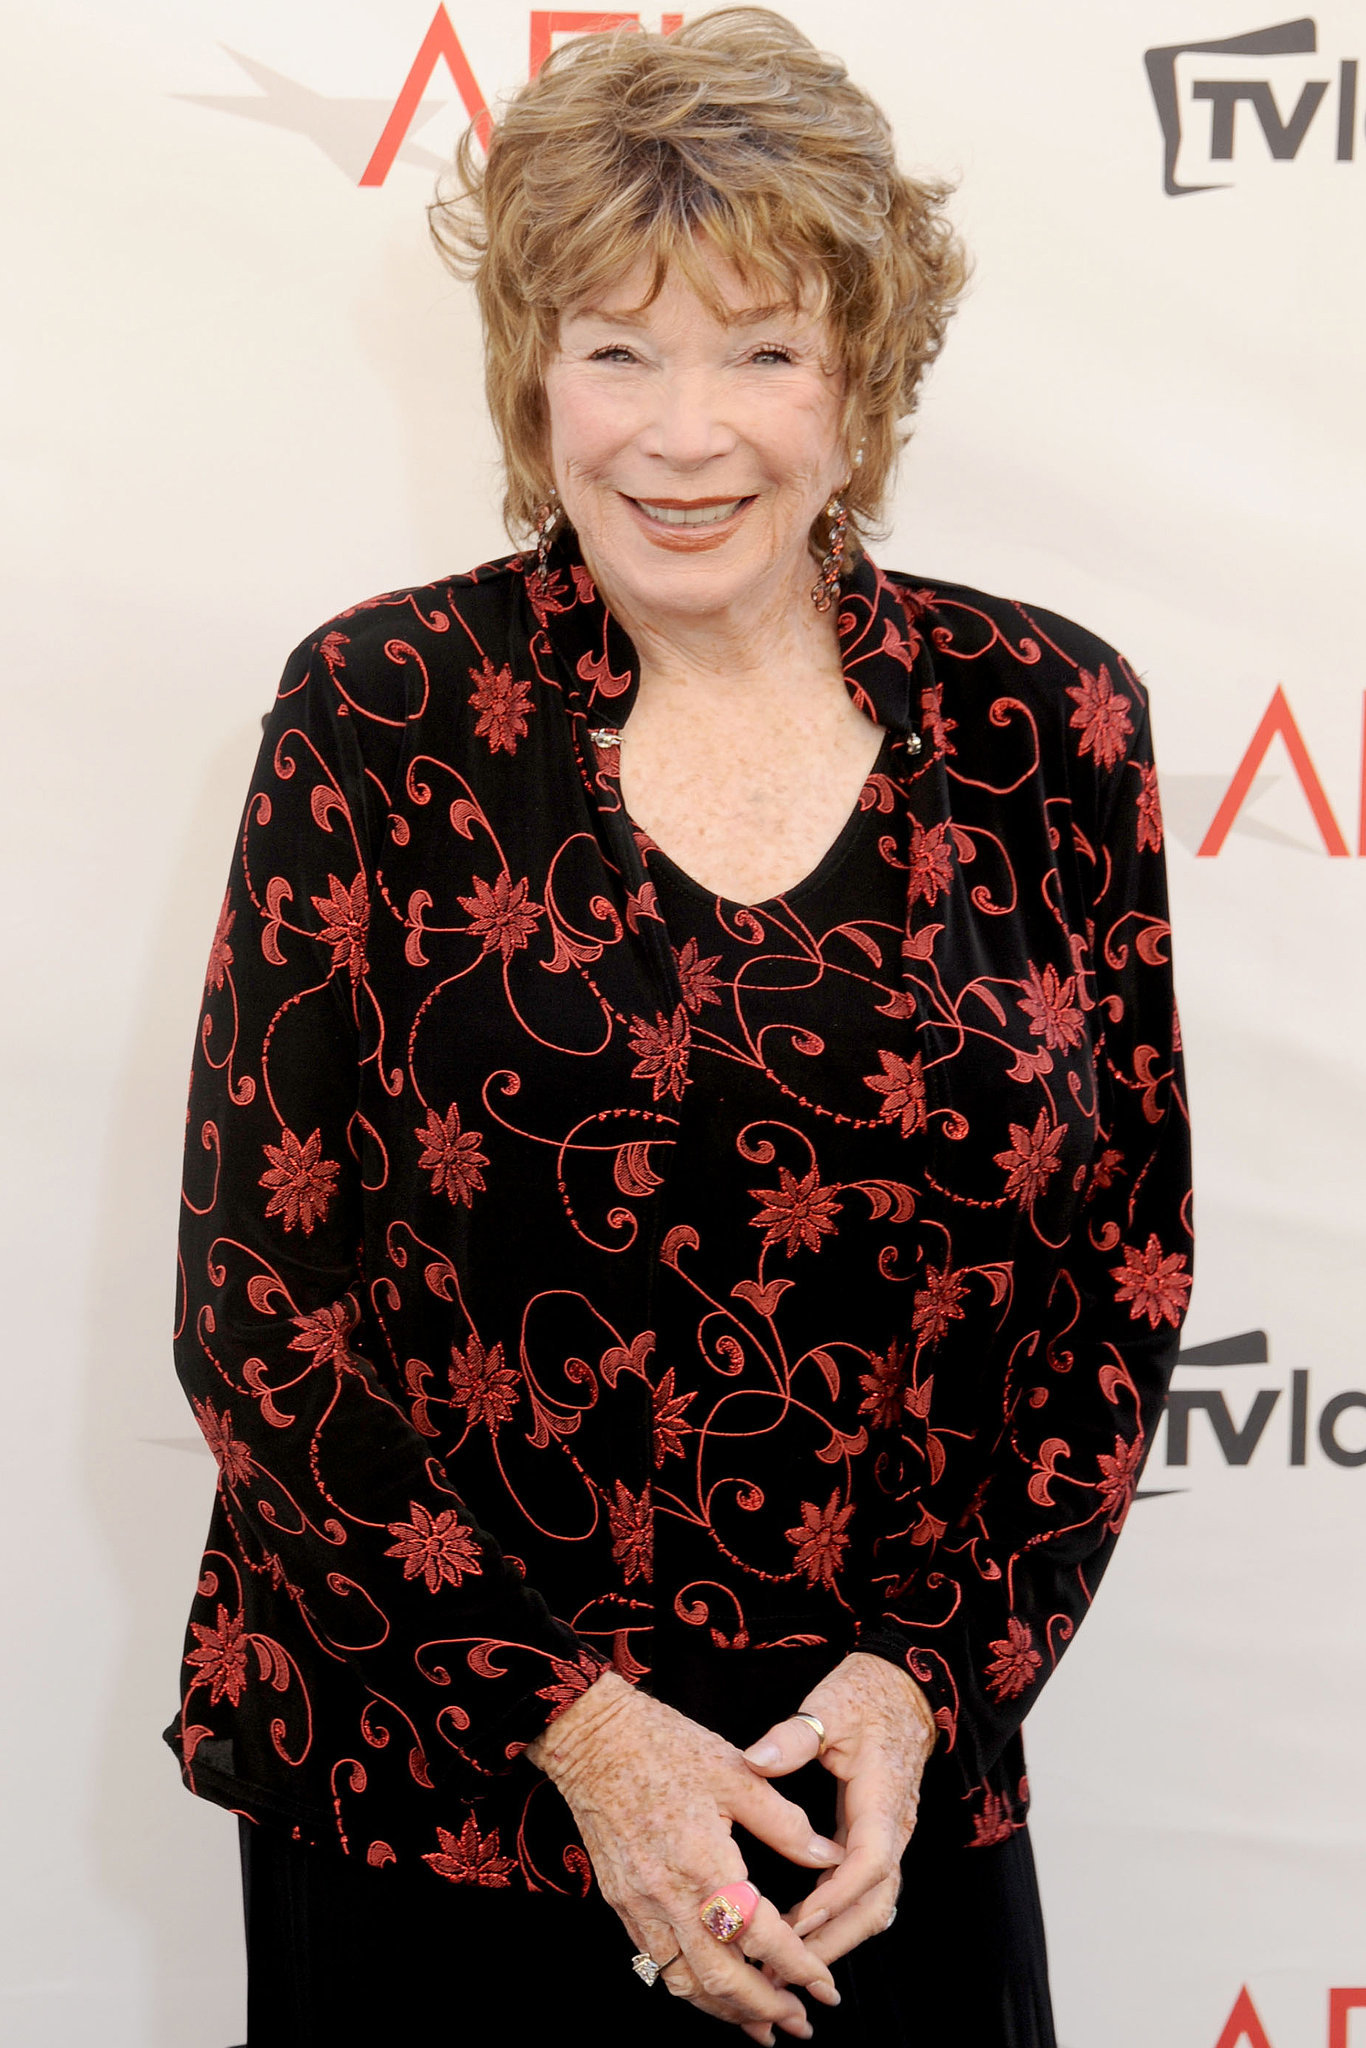 Shirley MacLaine will star in Men of Granite, about a group of basketball players in a small Illinois town in the 1940s.